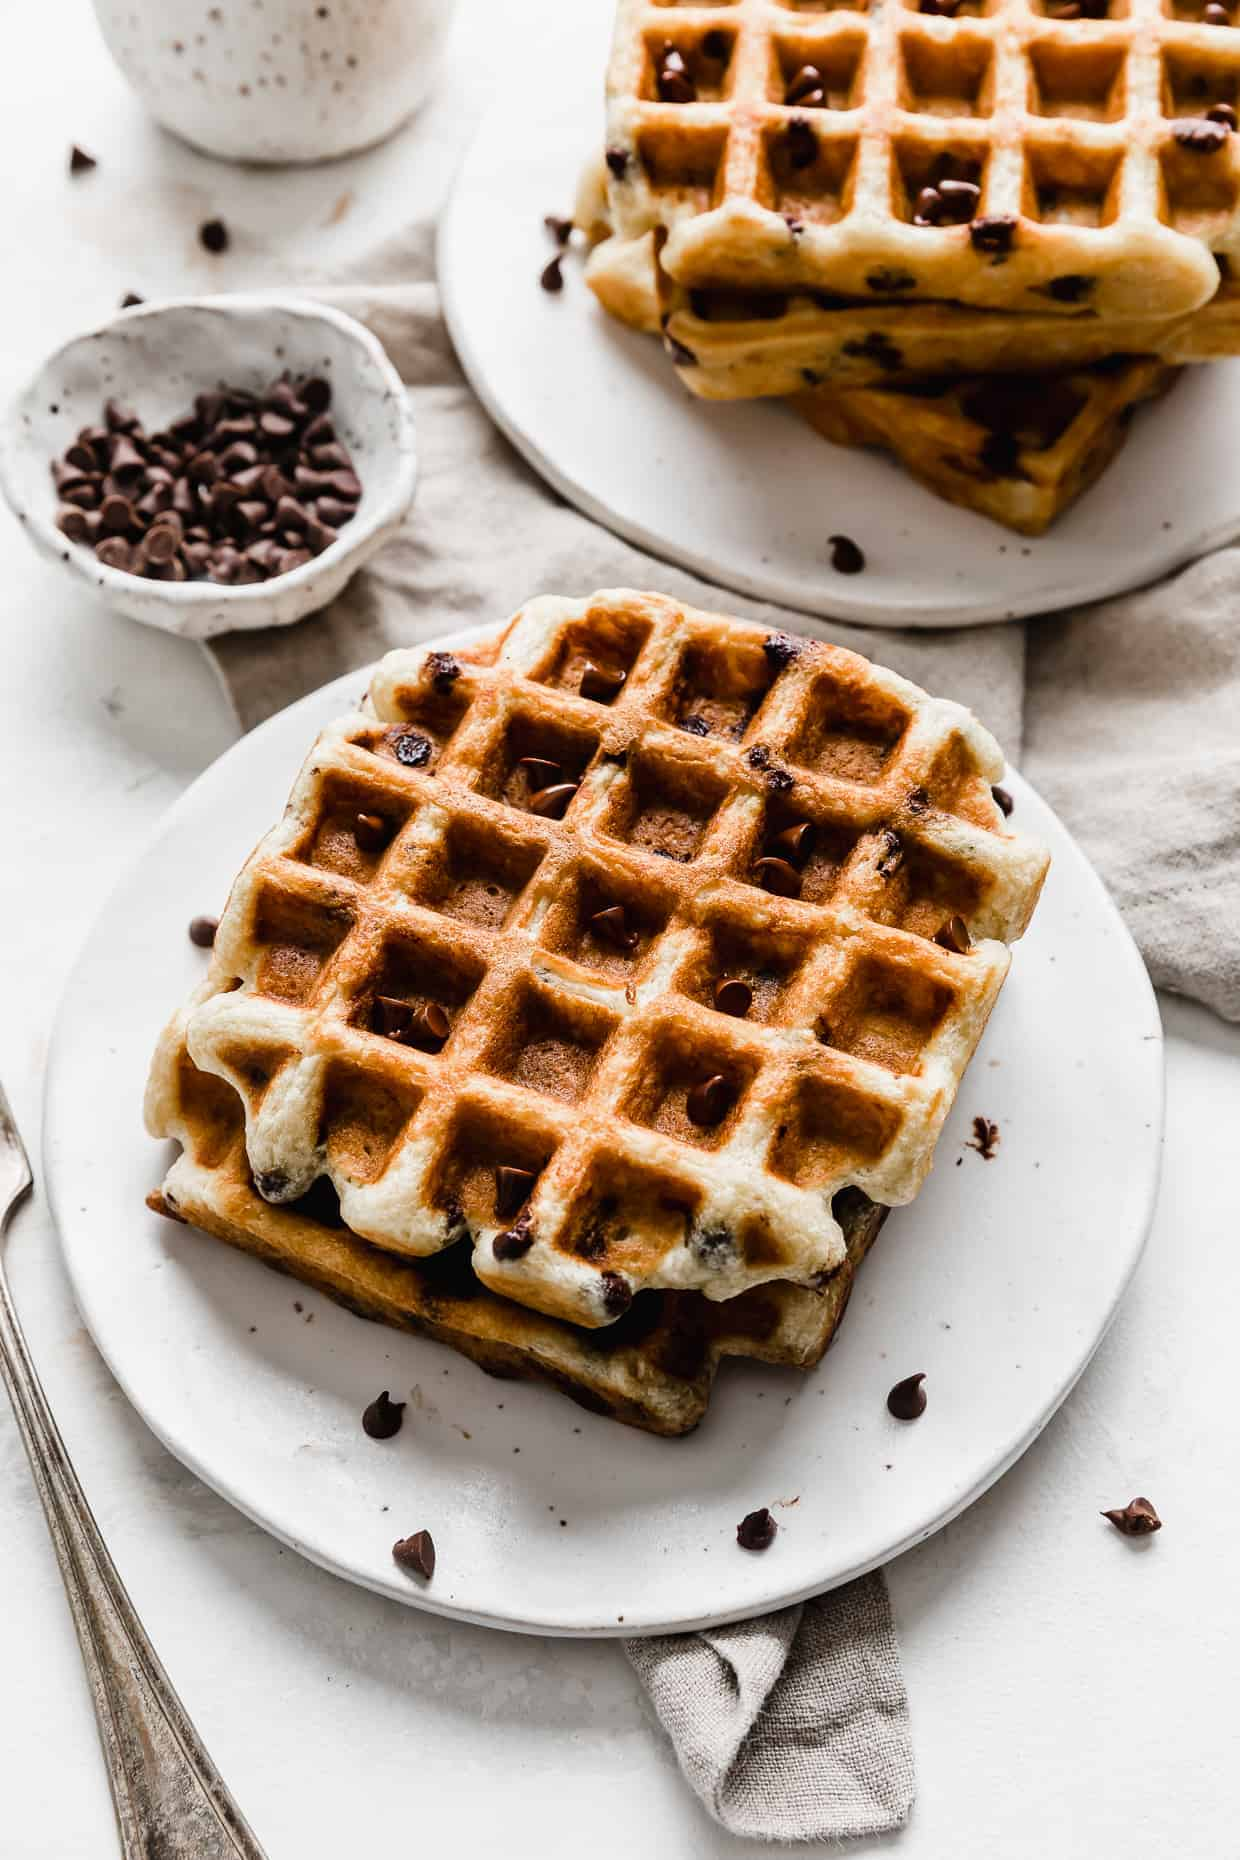 A stack of Chocolate Chip Waffles on a white plate.